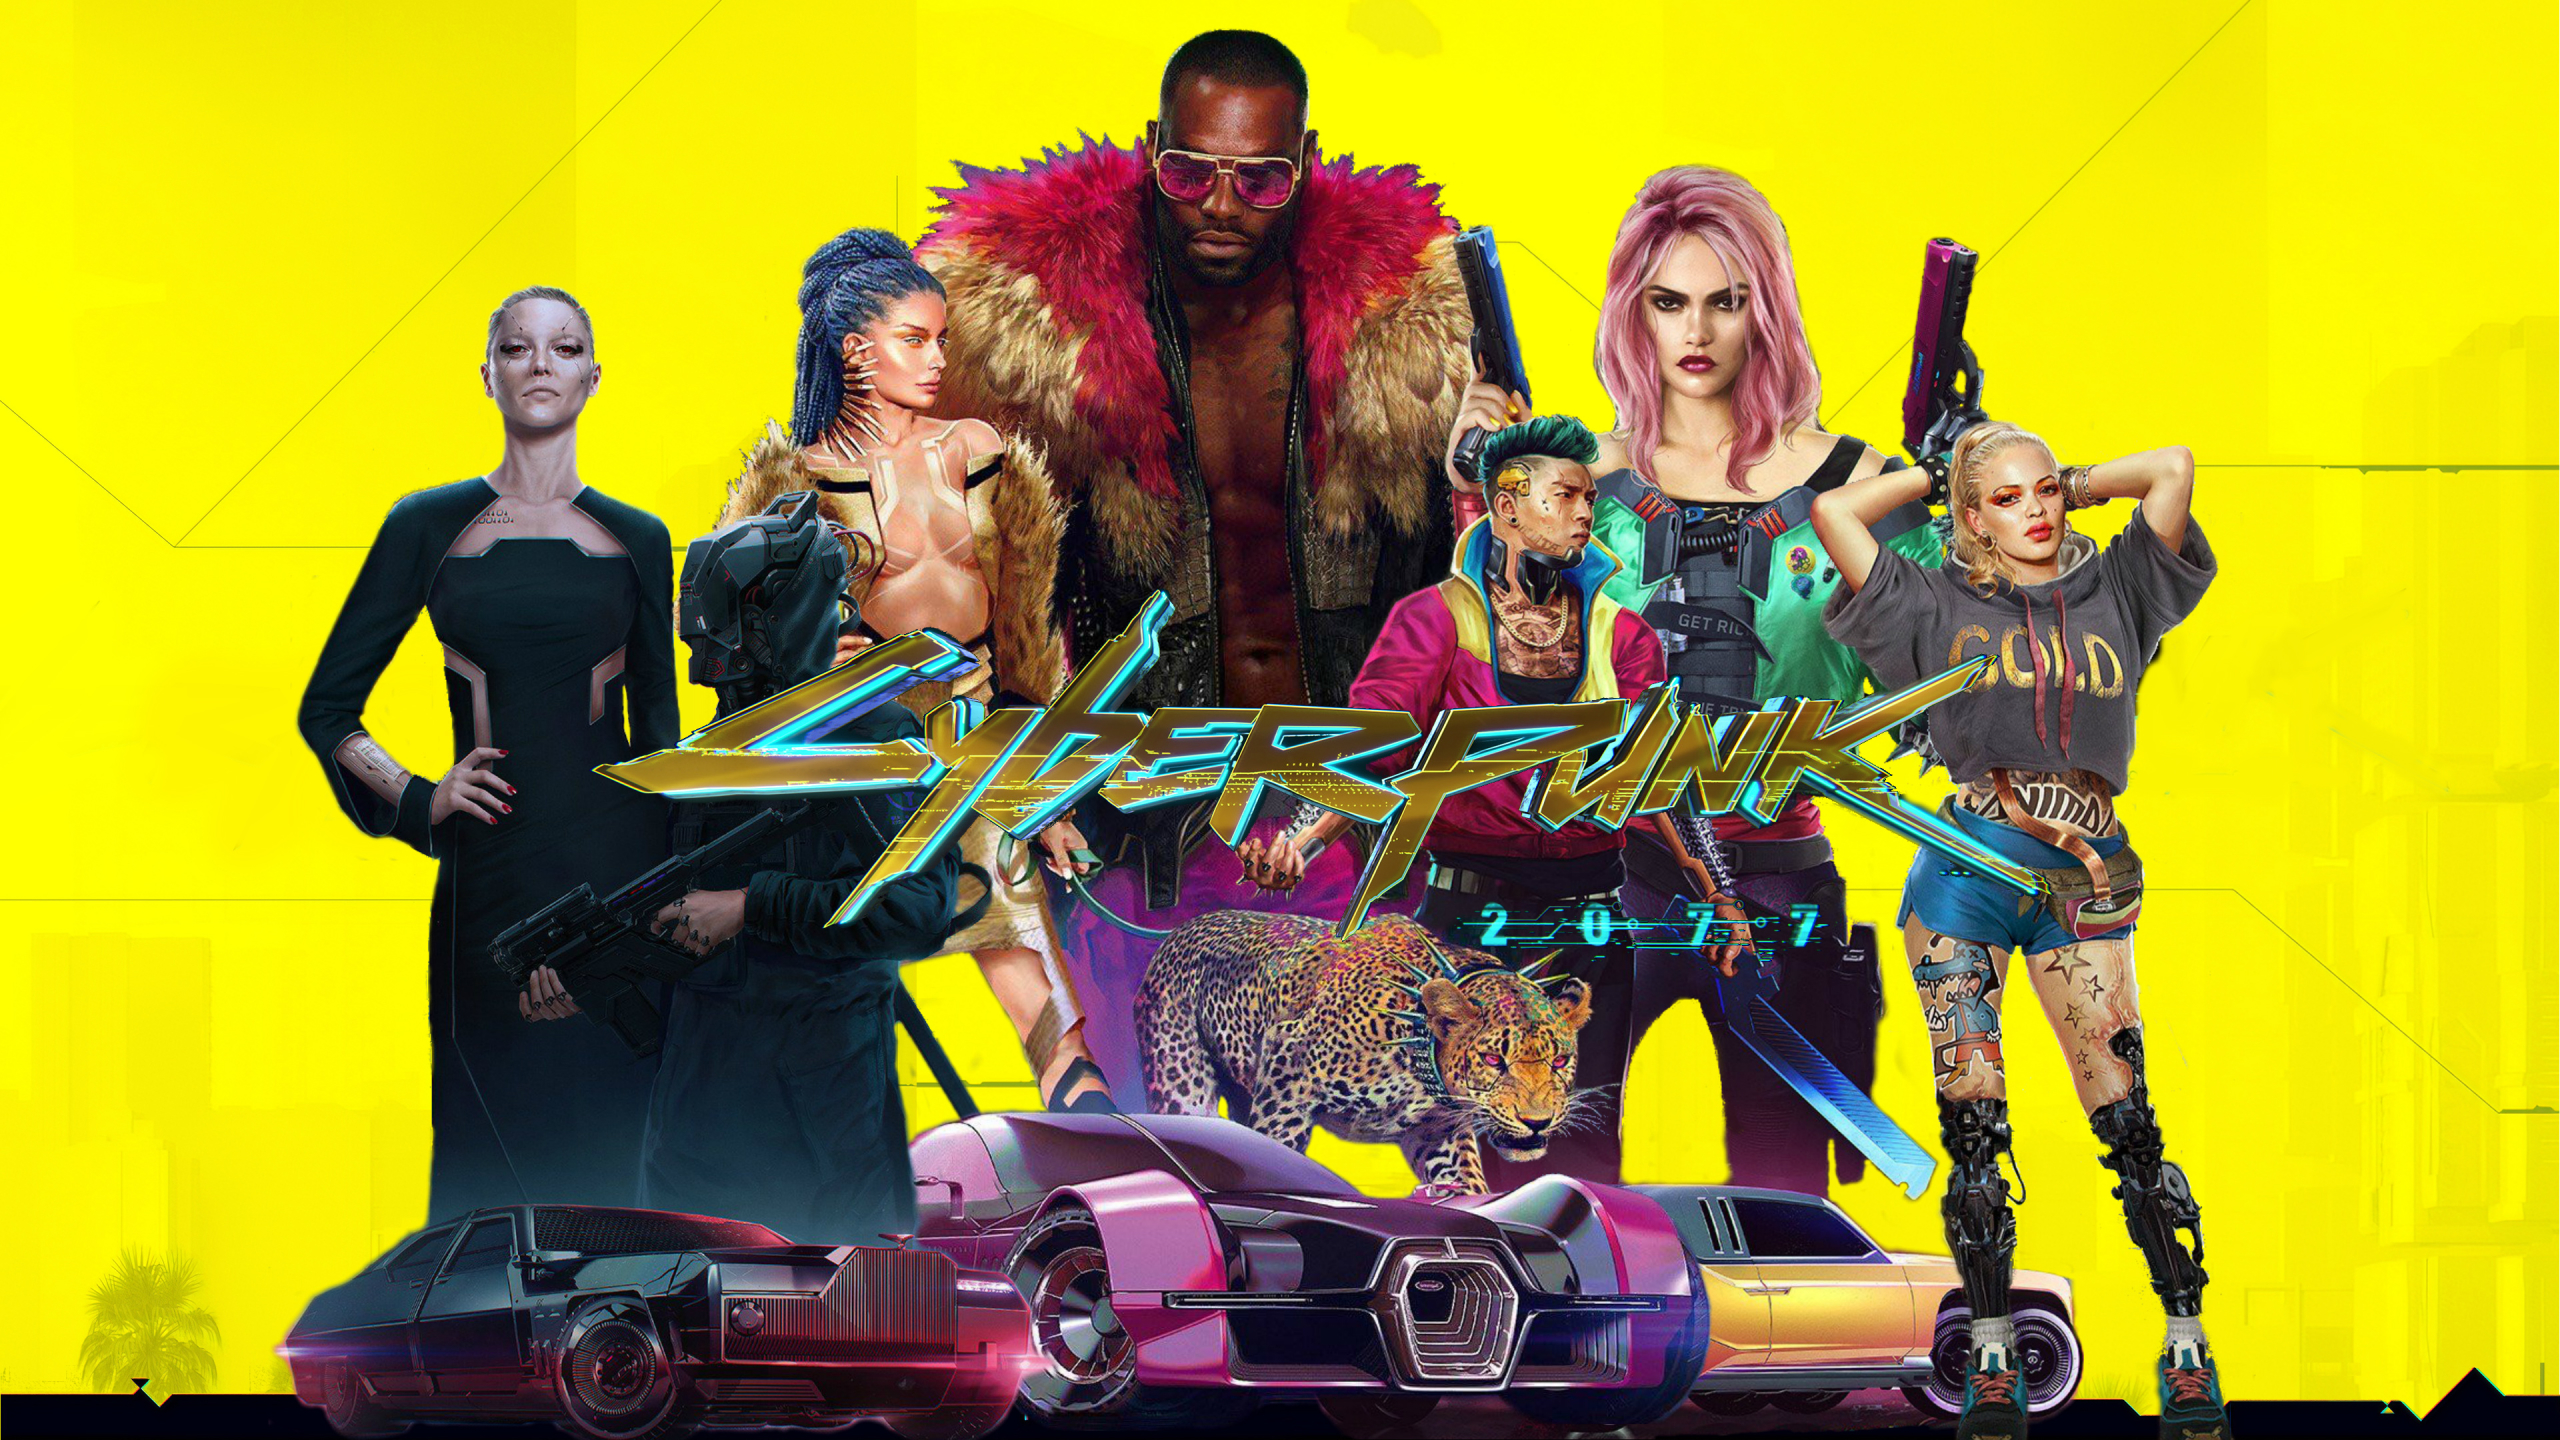 2560x1440 Cyberpunk 2077 4k Game 1440p Resolution Wallpaper Hd Games 4k Wallpapers Images Photos And Background